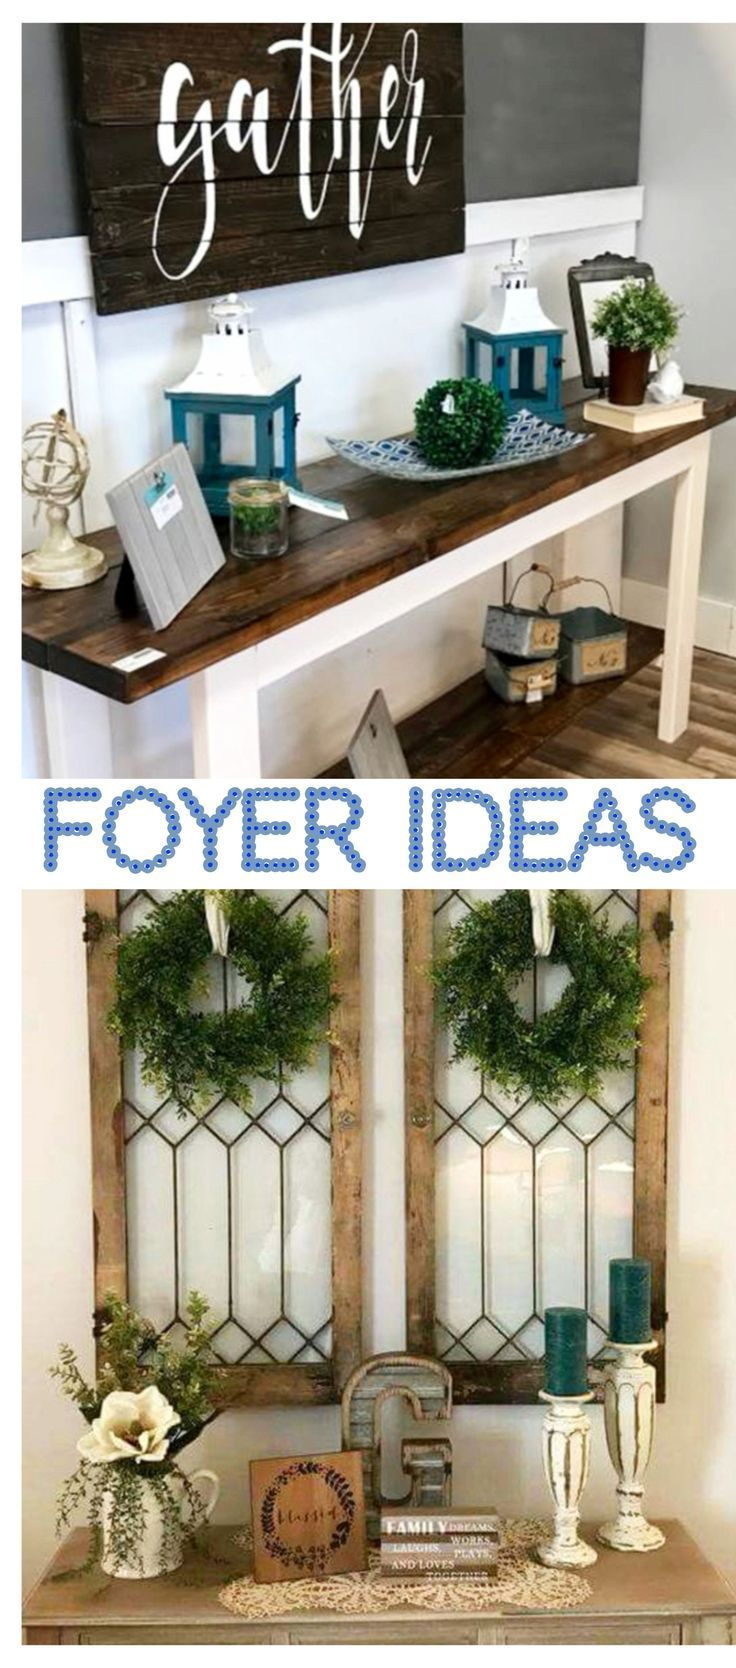 Foyer Ideas for decorating entryway or entrance hall - great ideas for small foyers too (like apartment foyers / entryways) #diyhomedecor #apartmentdecorating #homedecorideas